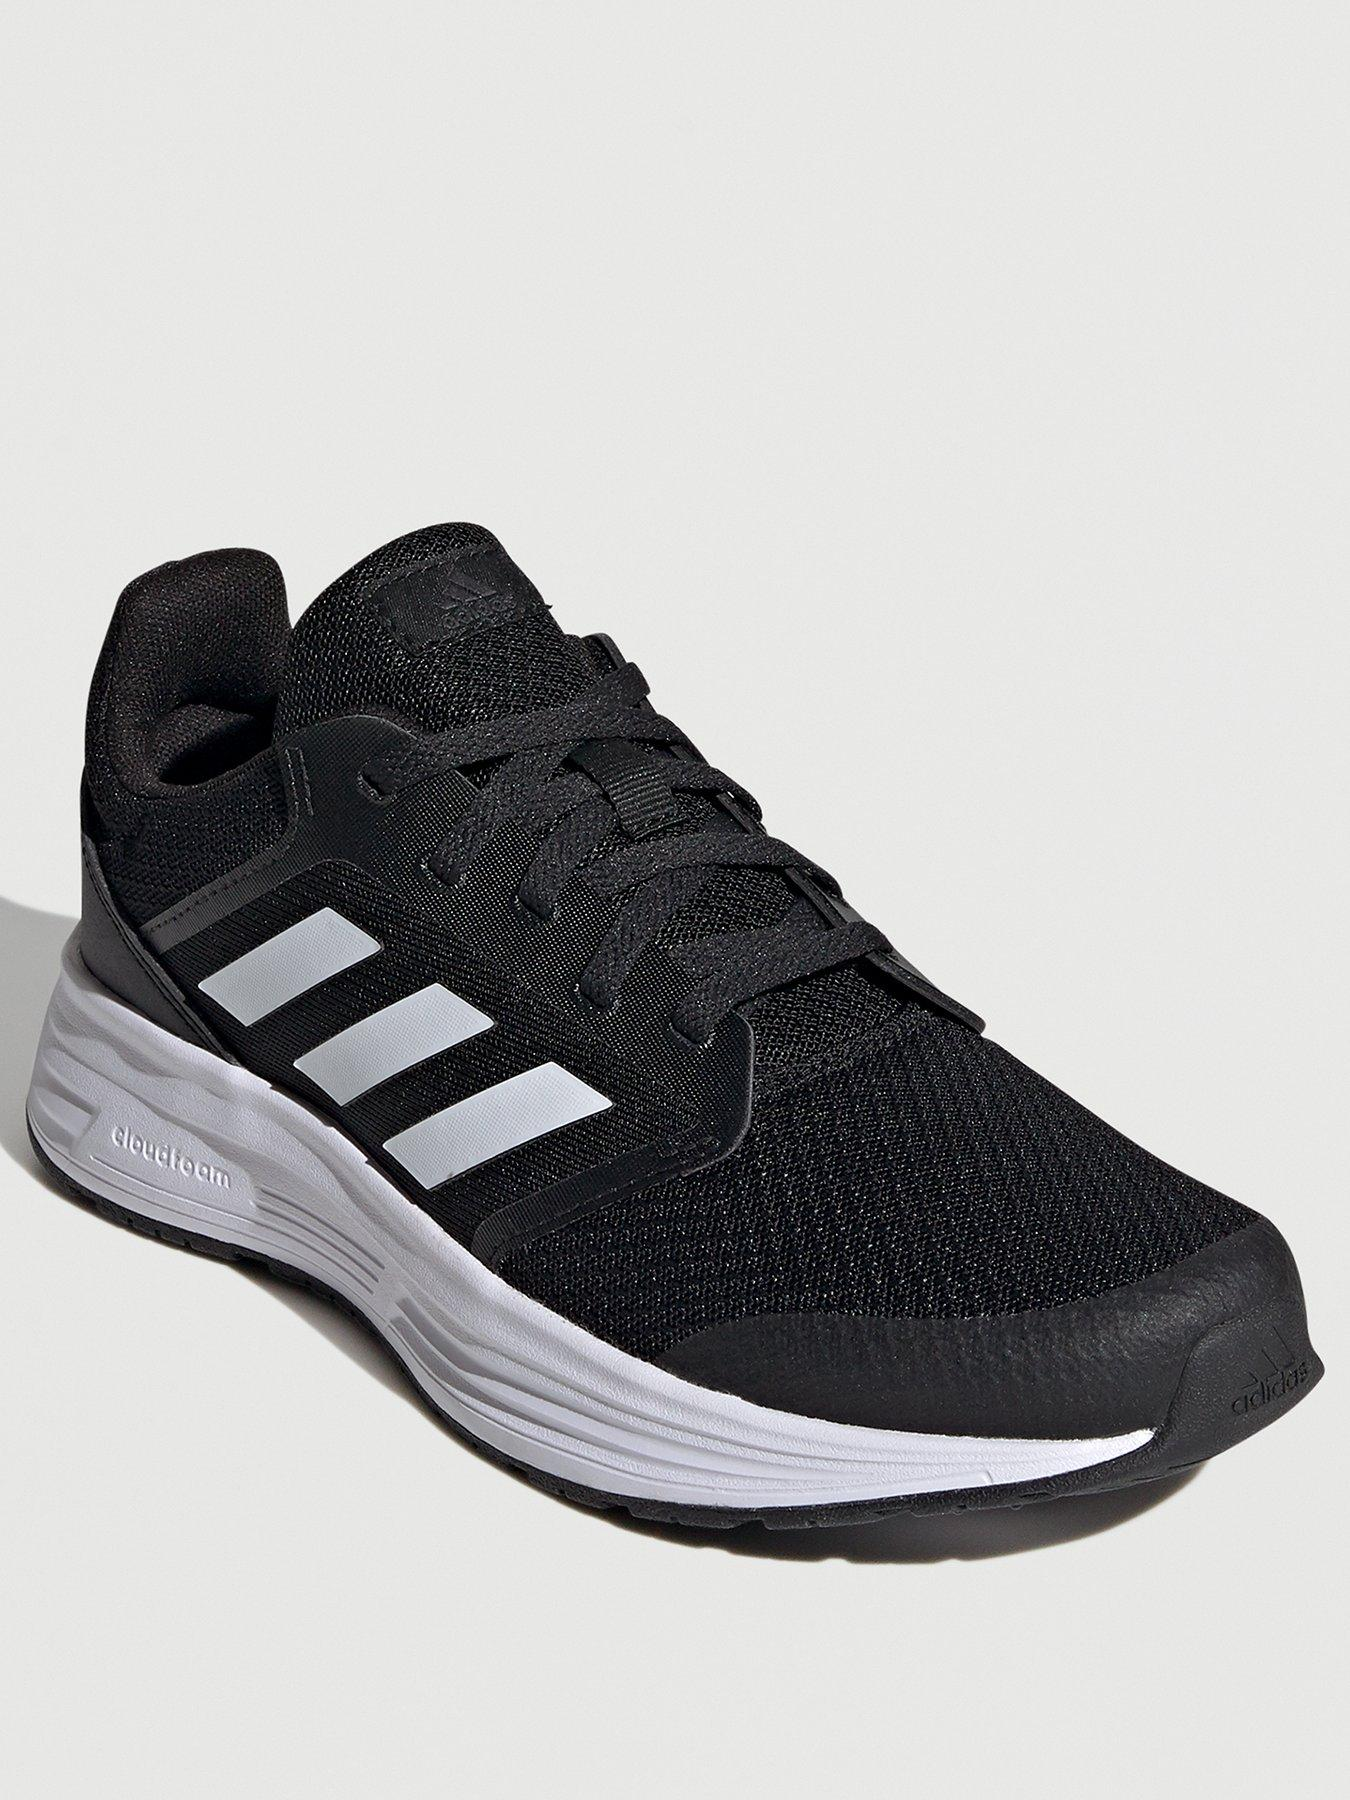 Womens Sports Shoes   adidas   www.very.co.uk